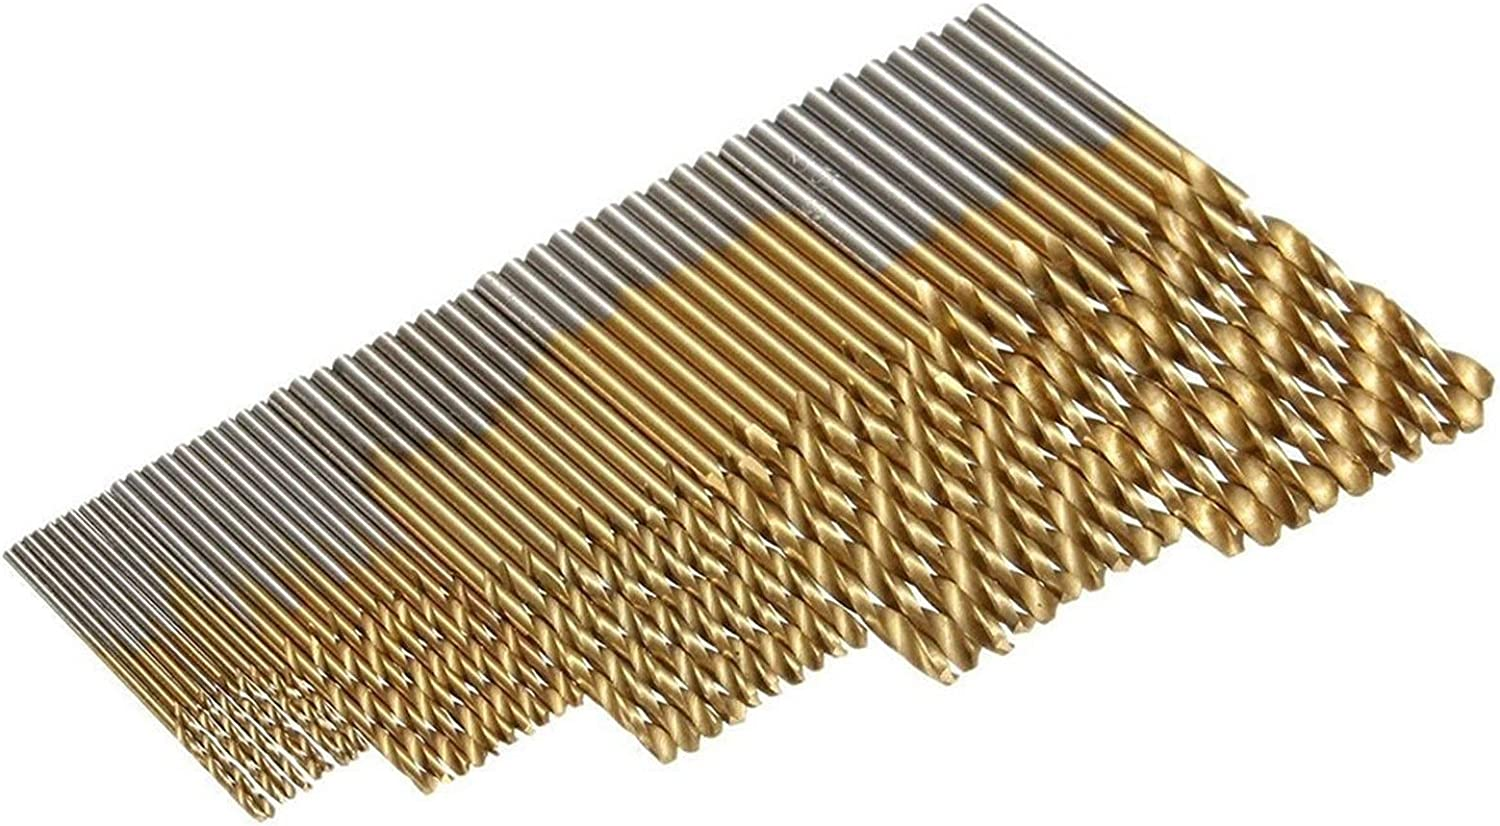 MOUNTAIN MEN Durable Very popular! 50pcs High Speed Steel 1.5 Twist Directly managed store 1.0 Drill